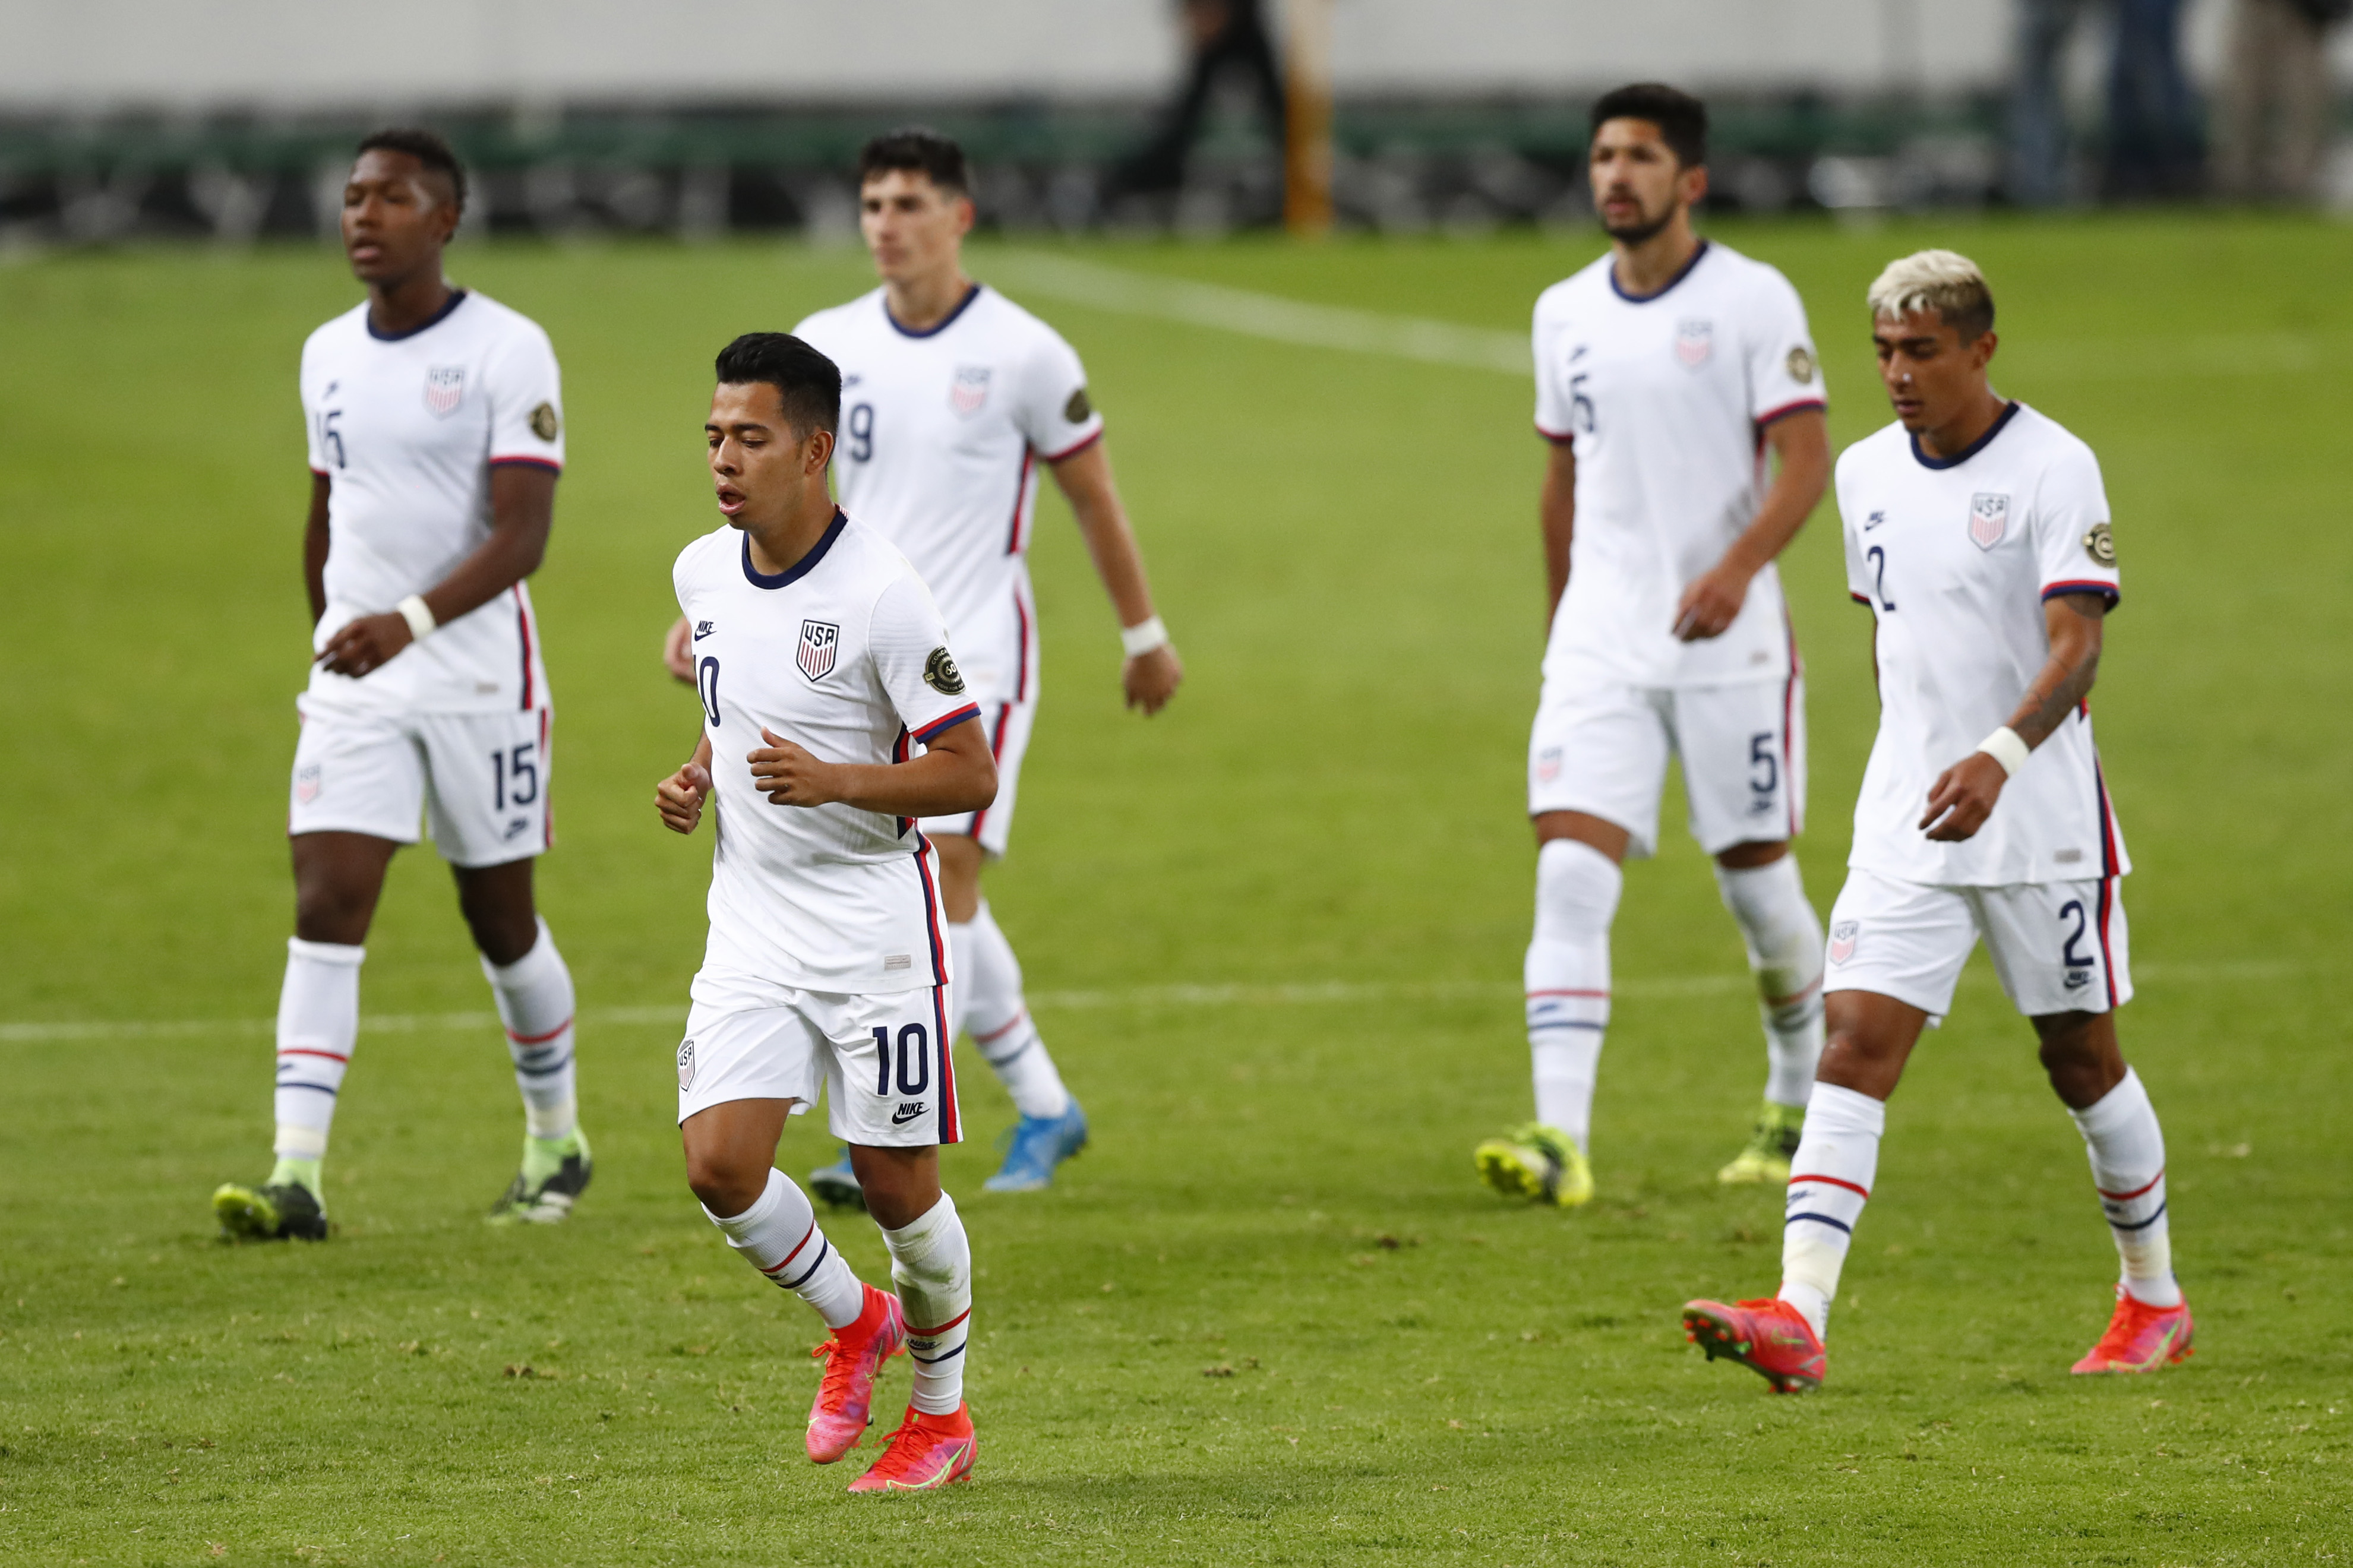 Mexico v USA - 2020 Concacaf Men's Olympic Qualifying